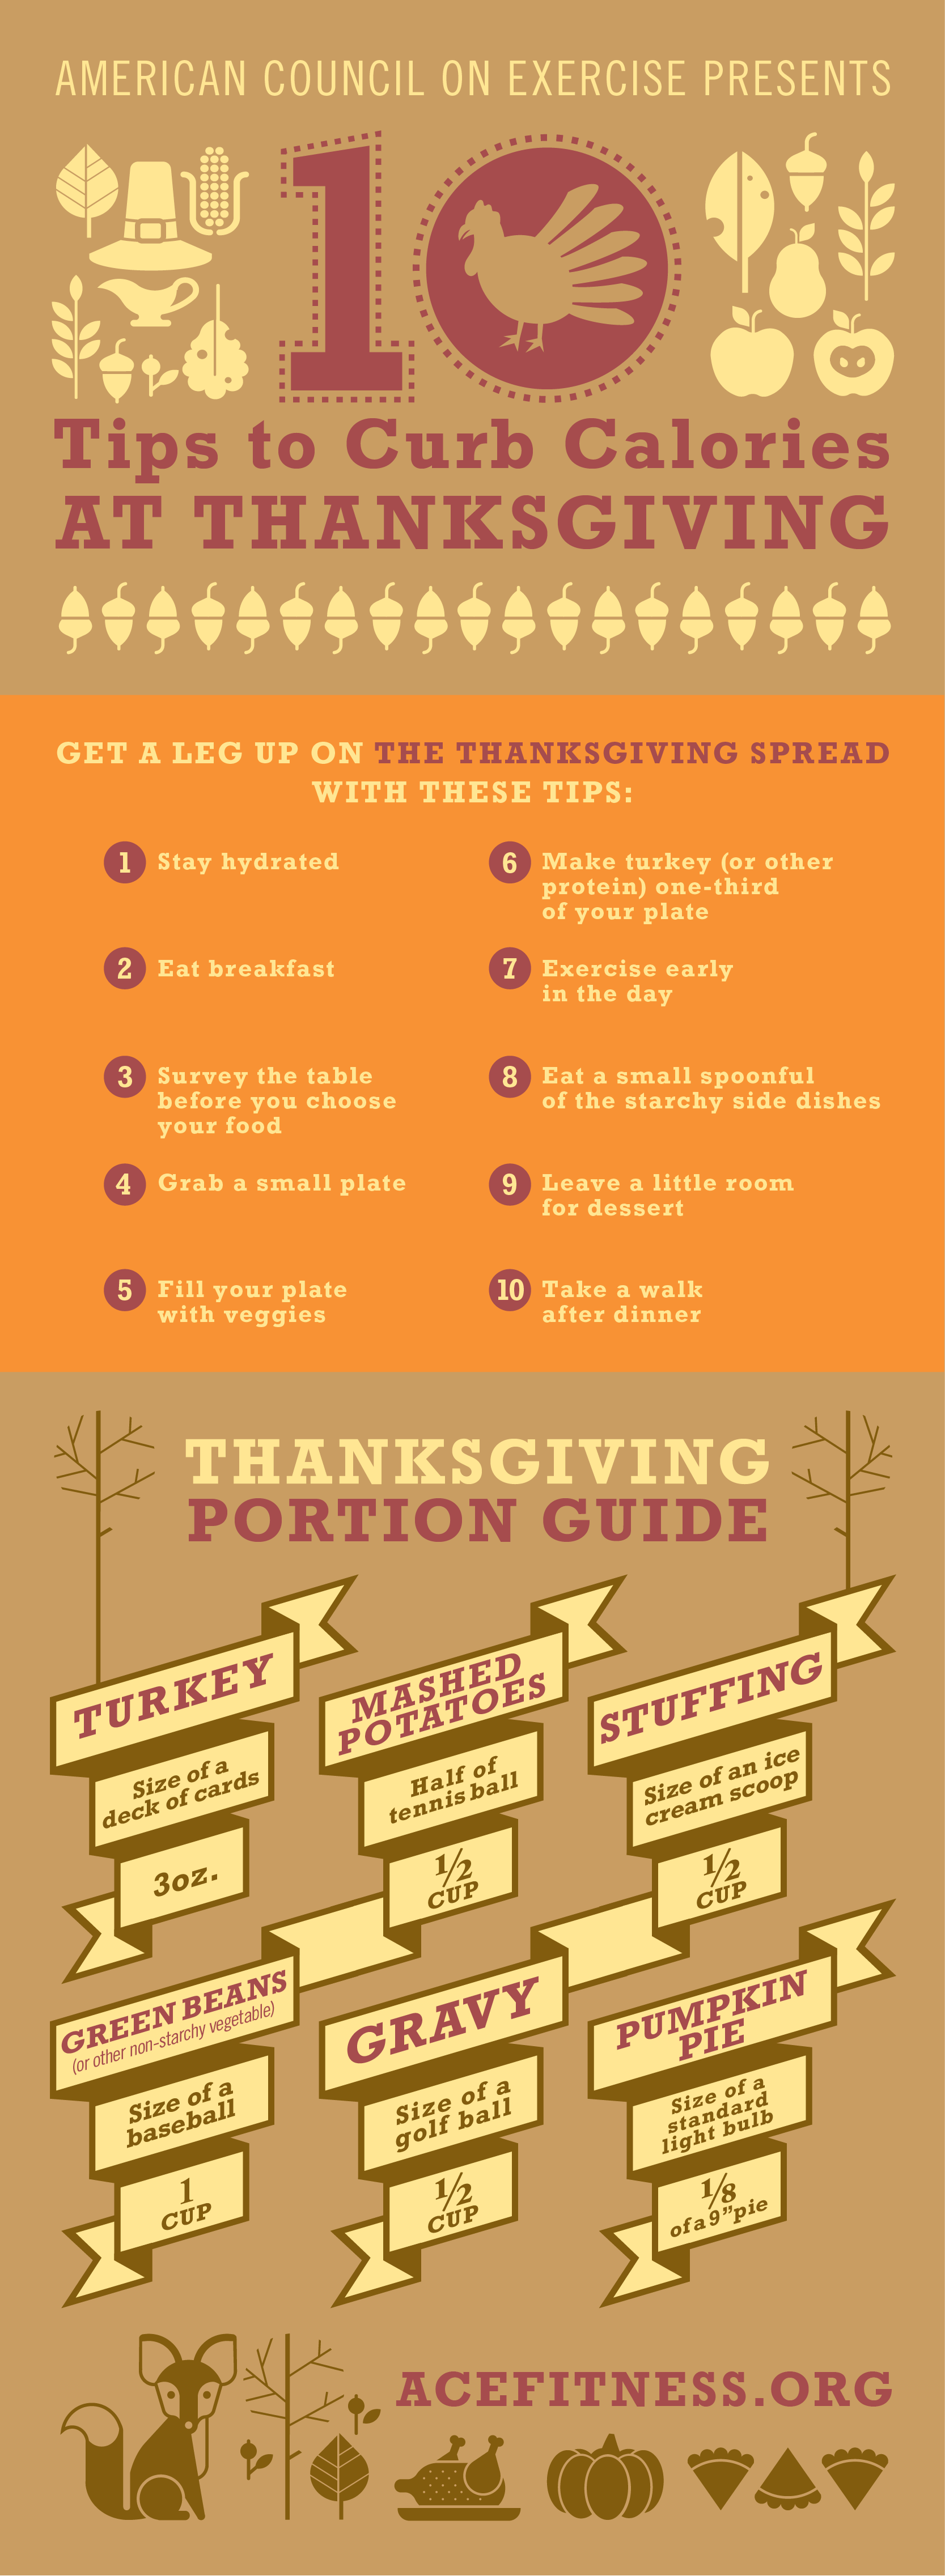 Thanksgiving Portion Guide Infographic